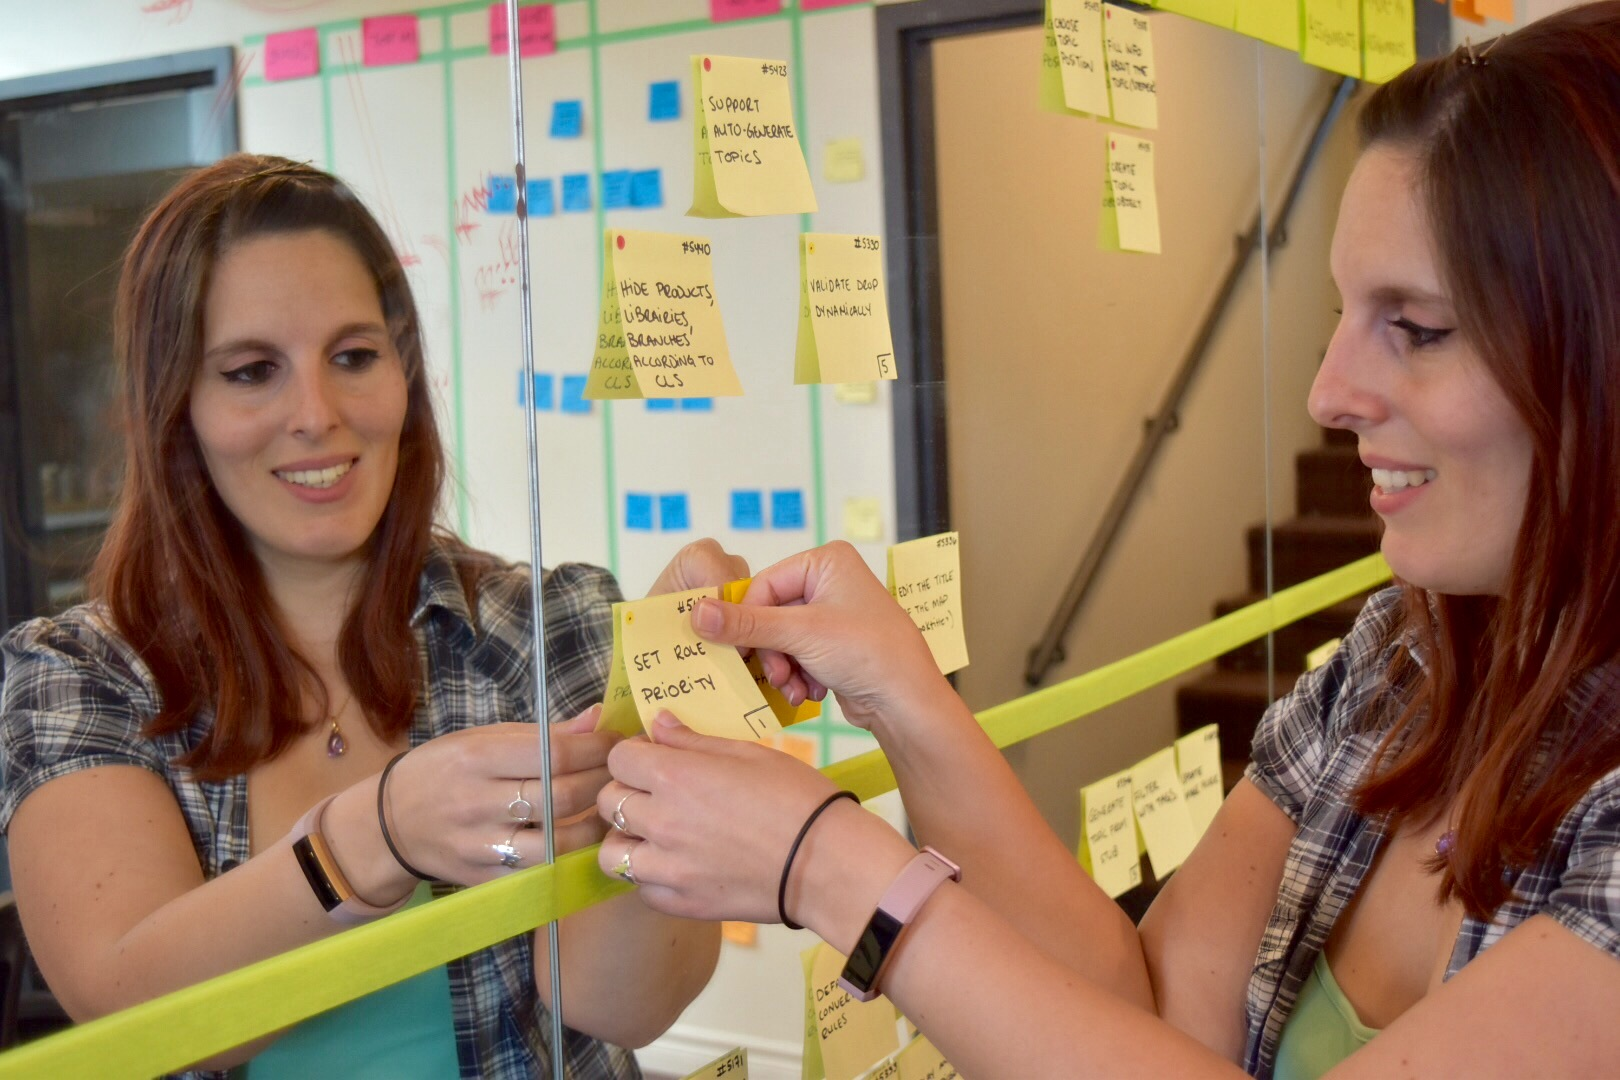 Woman gluing post-it note to mirror